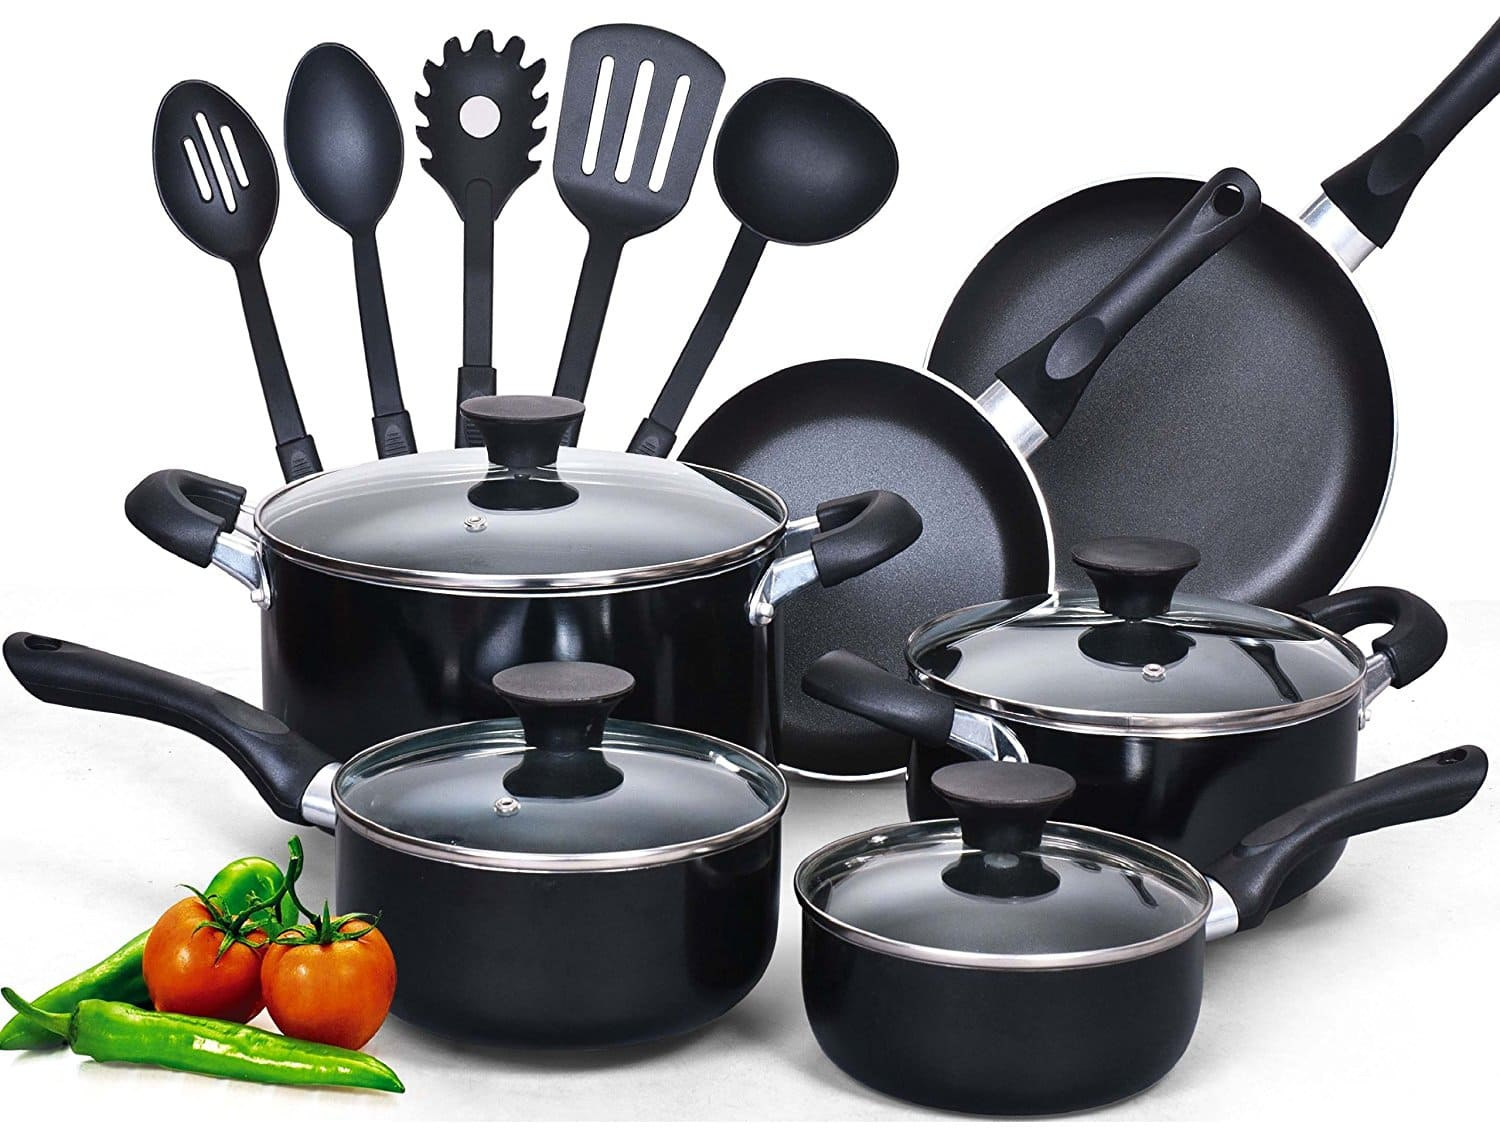 Cook N Home 15-Piece Nonstick Stay Cool Handle Cookware Set, Black [Black, 15 Piece] $39.99 FS @amazon